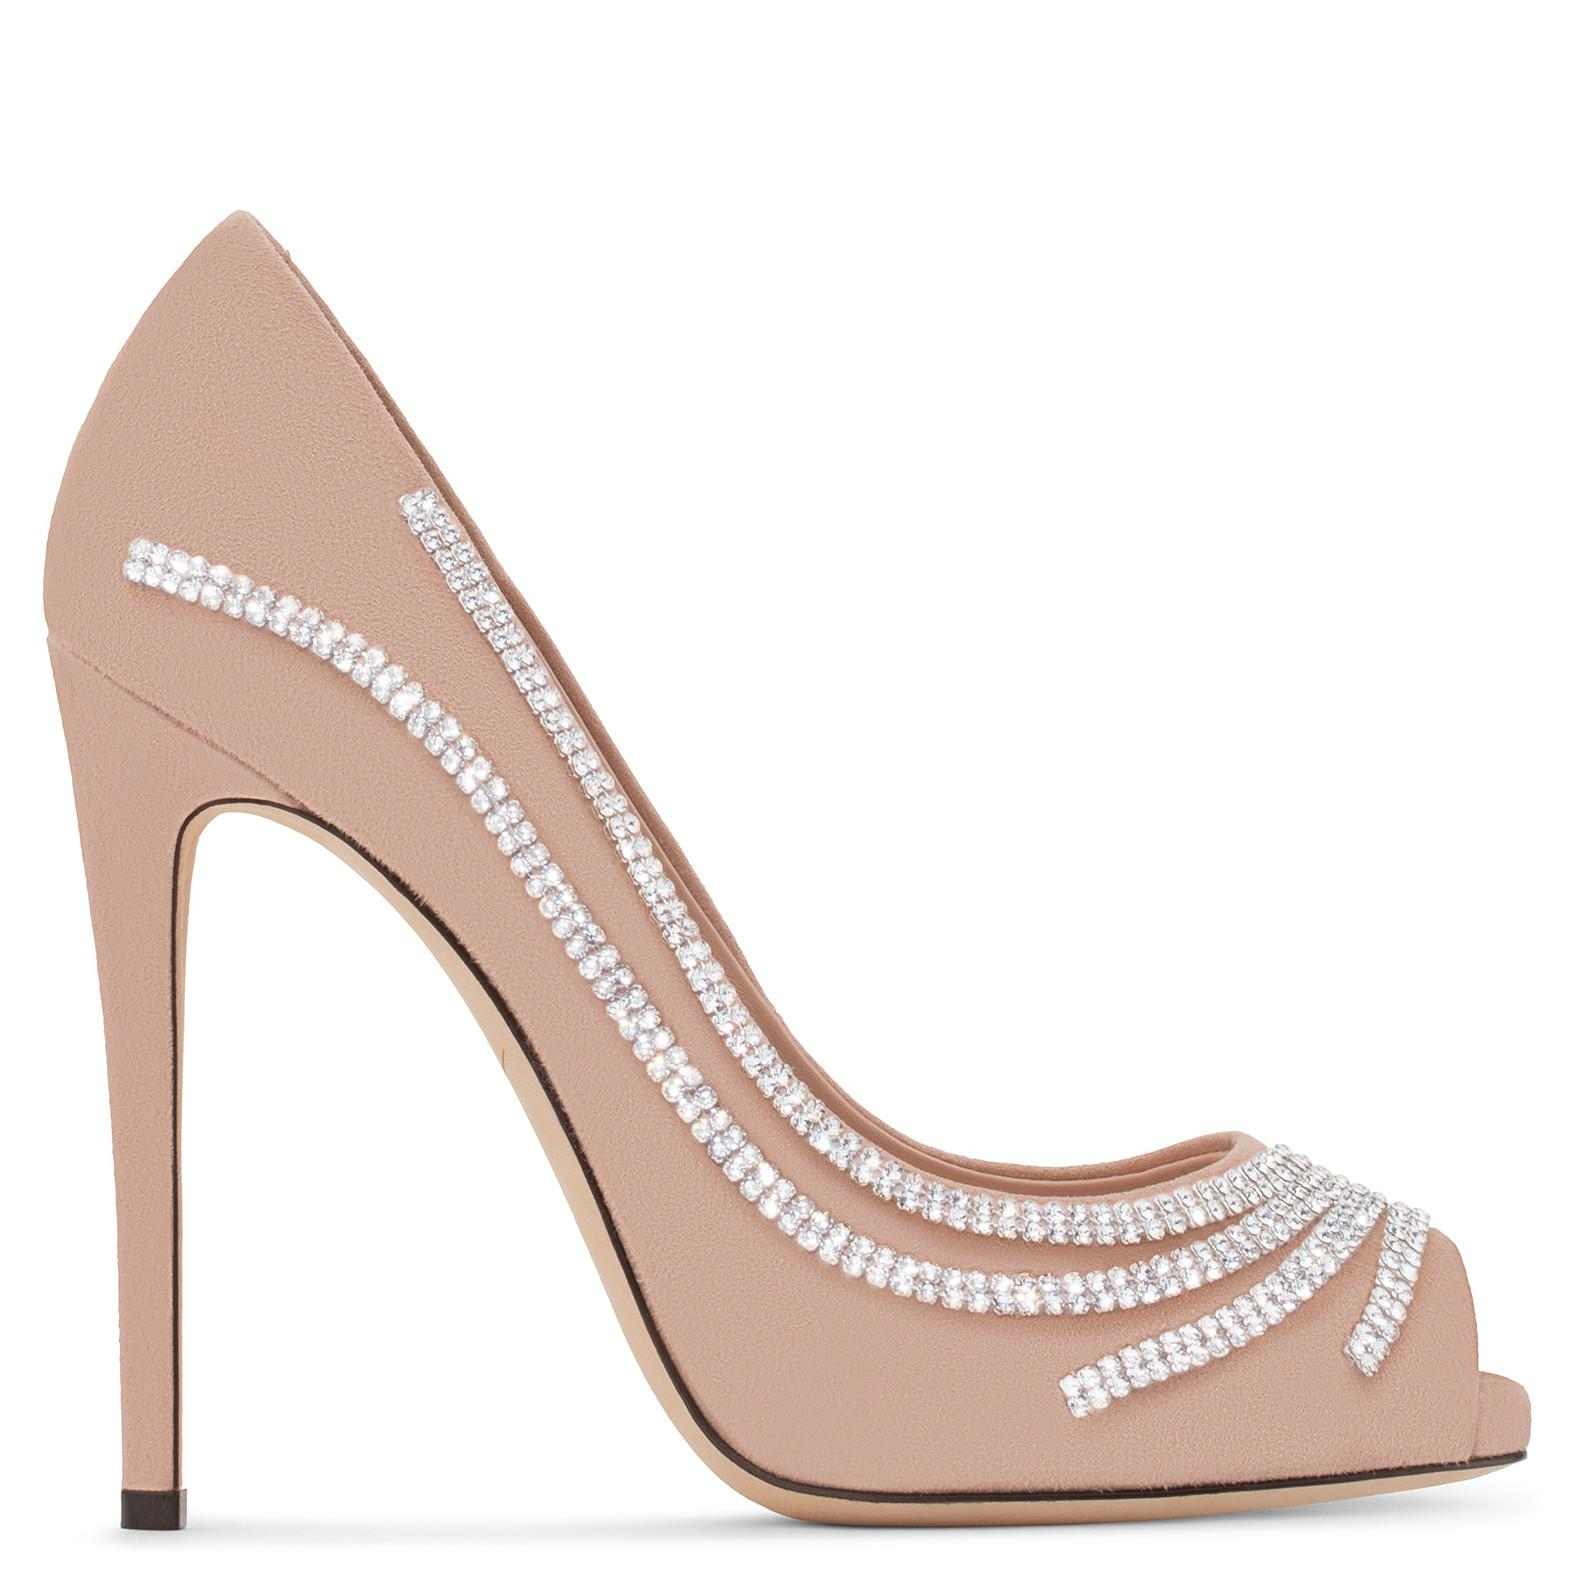 Giuseppe Zanotti - Pink Suede Pump With Crystals Clio